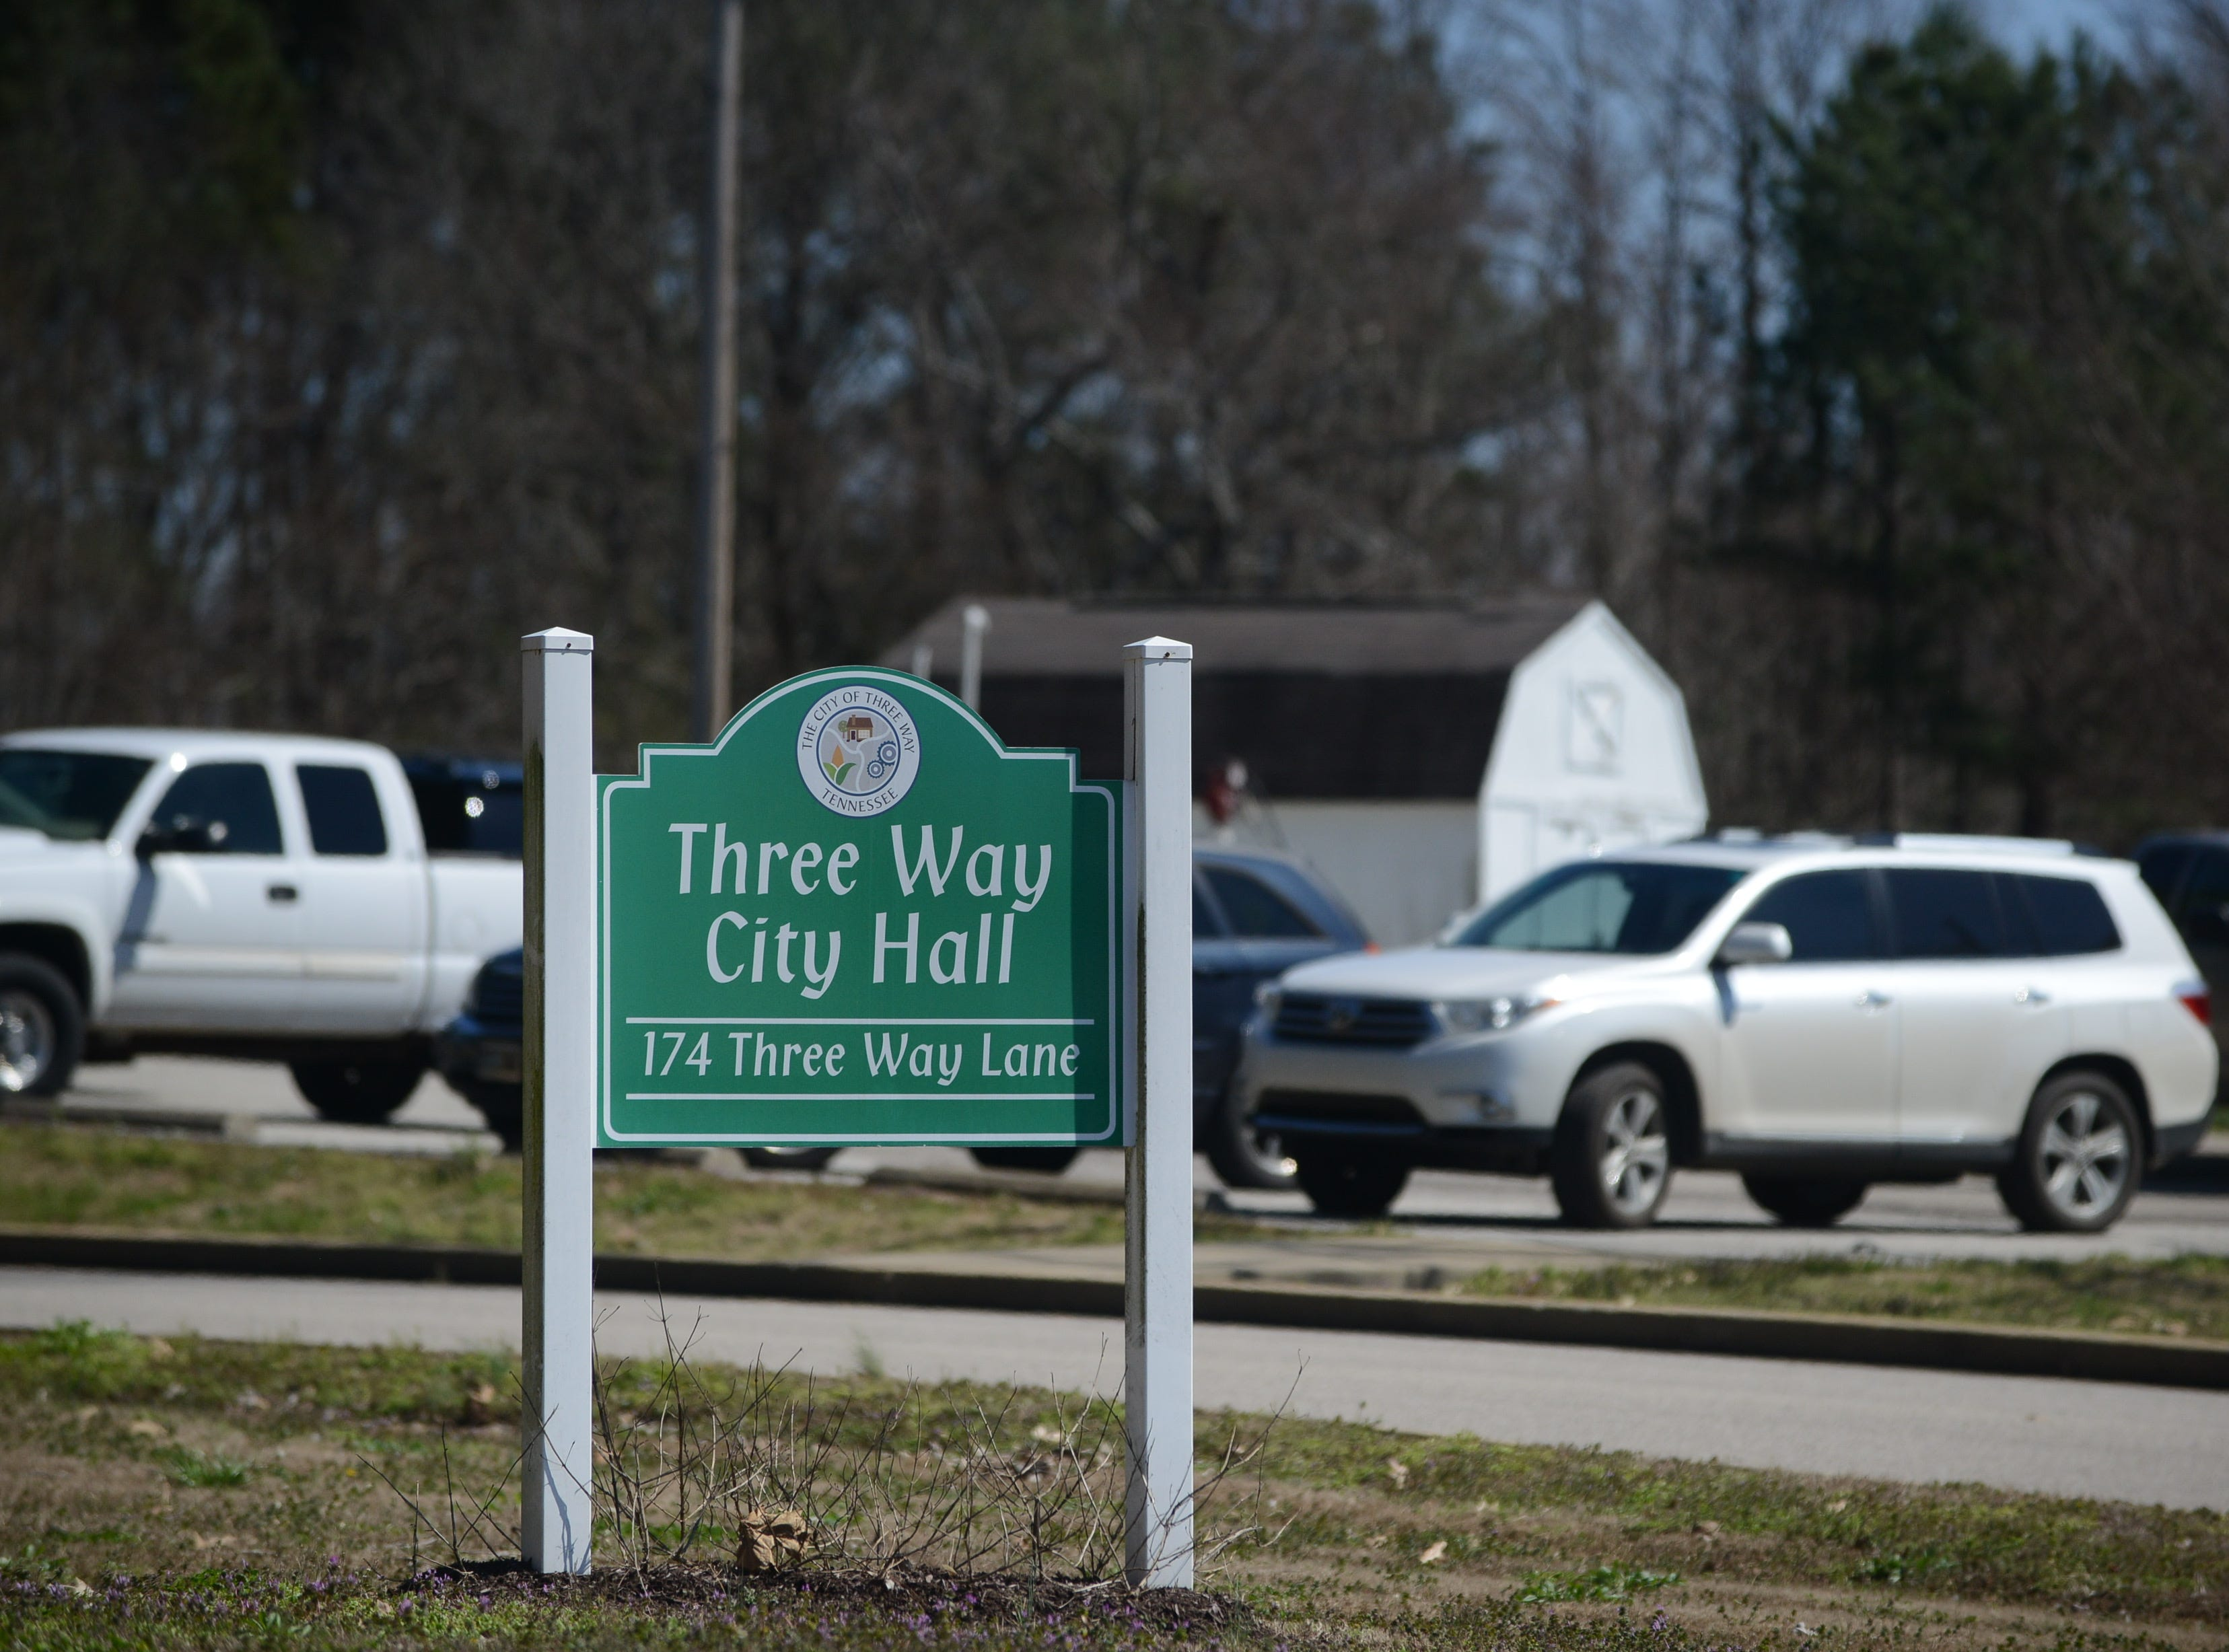 The Three Way City Hall is a temporary building located next to Pine Hill Park on March 17, 2019 in Three Way, Tenn.